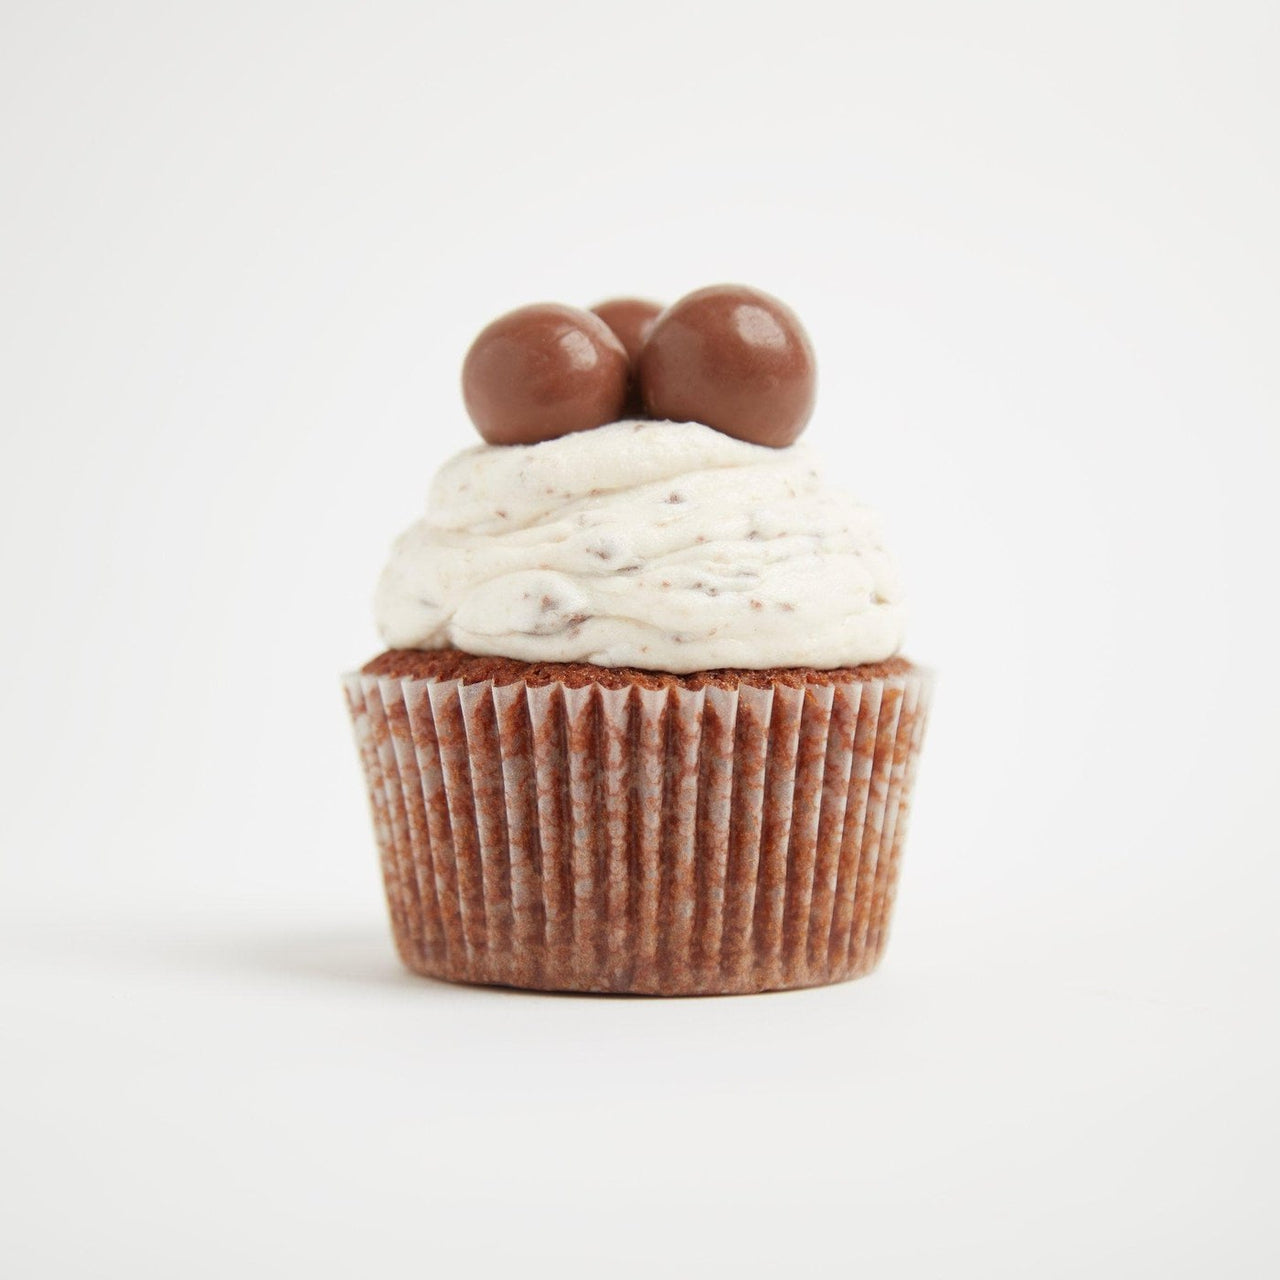 Malteser Cupcakes by Crumbs & Doilies